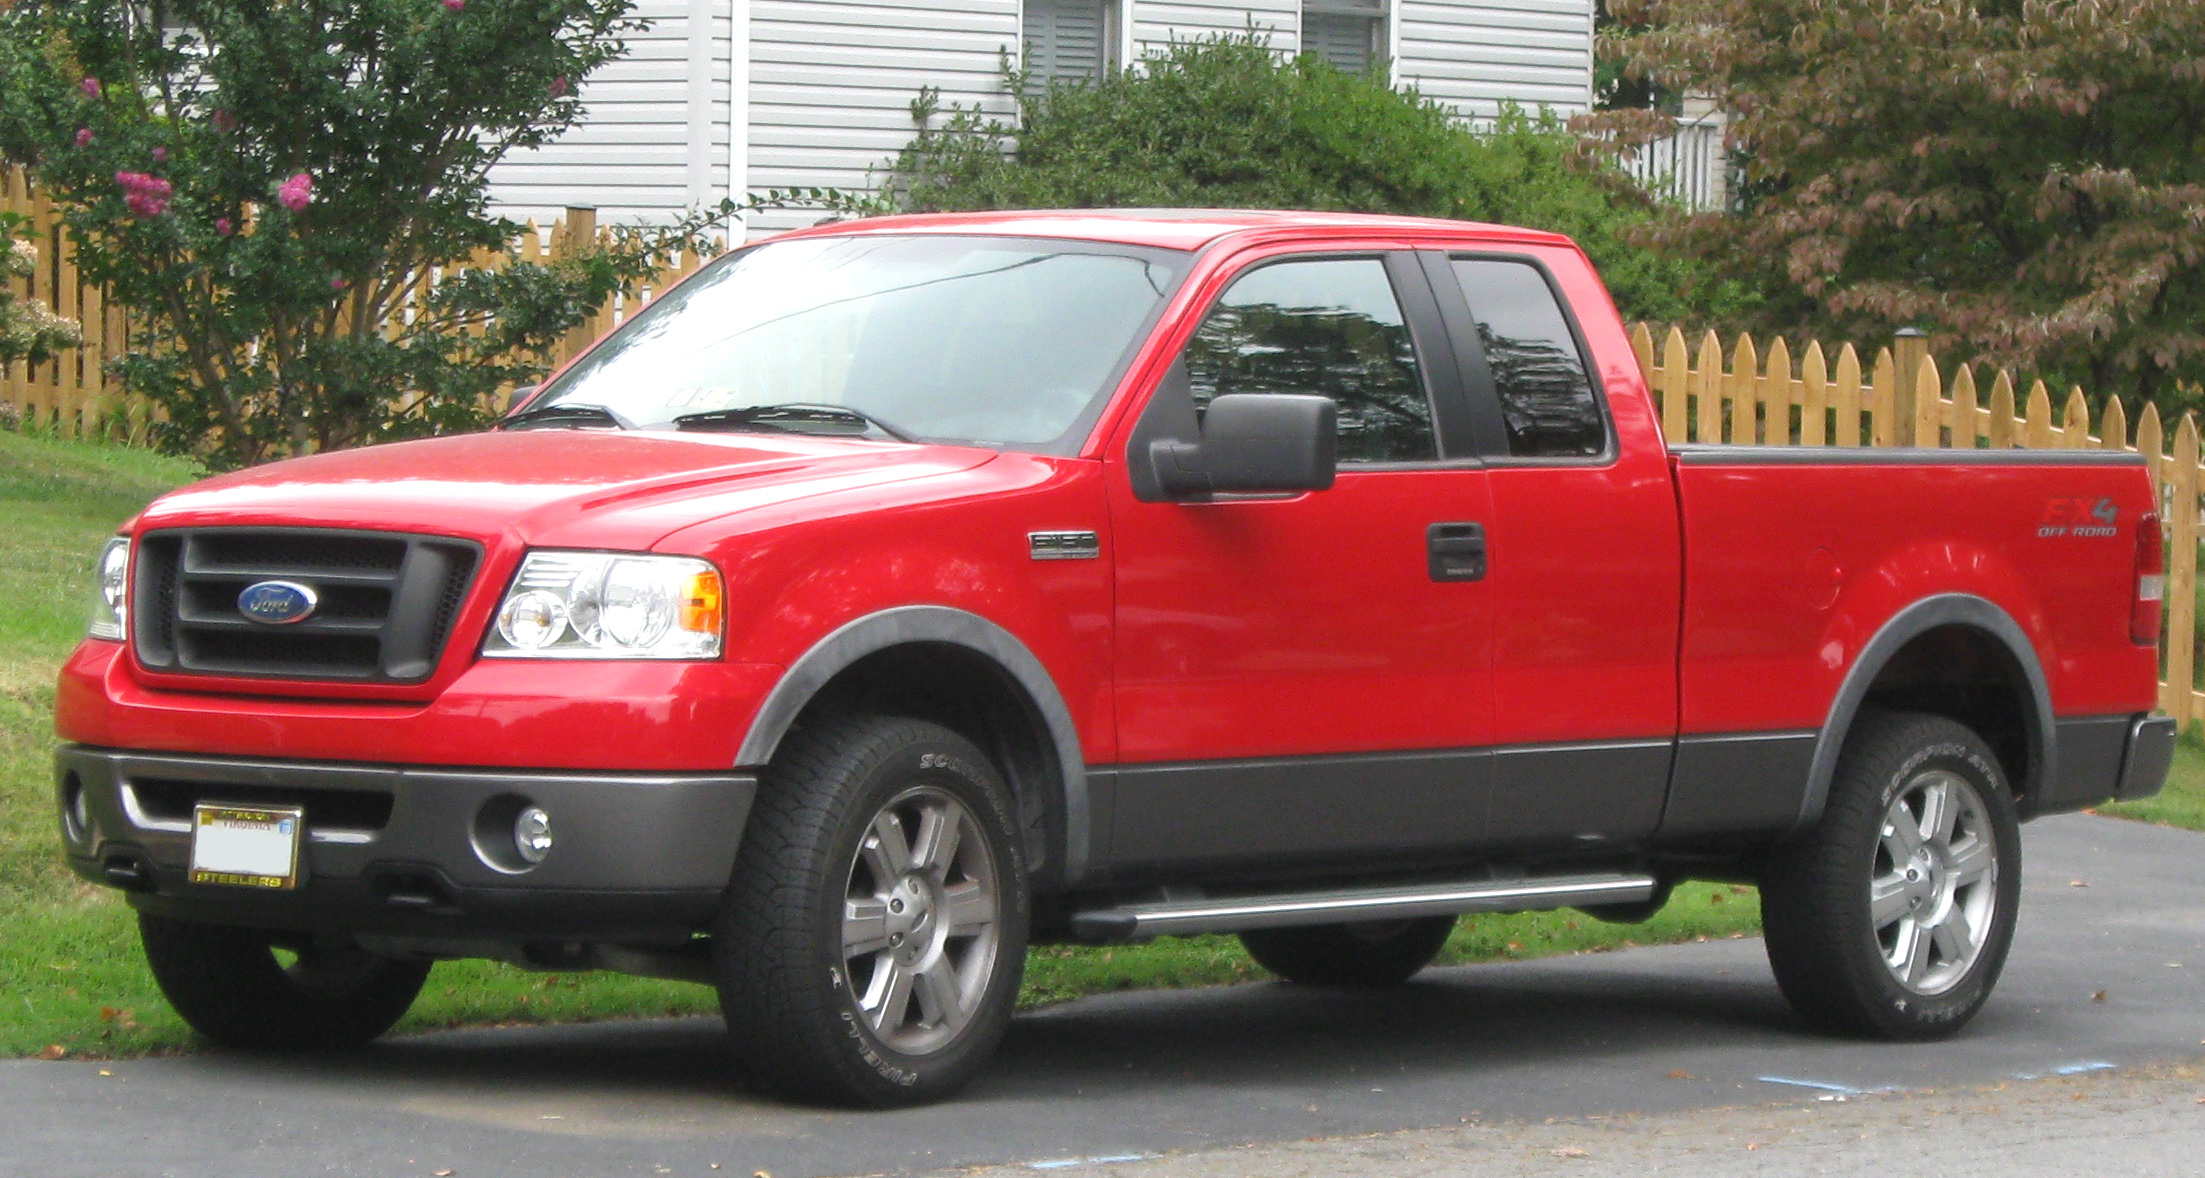 ford f-series (eleventh generation)